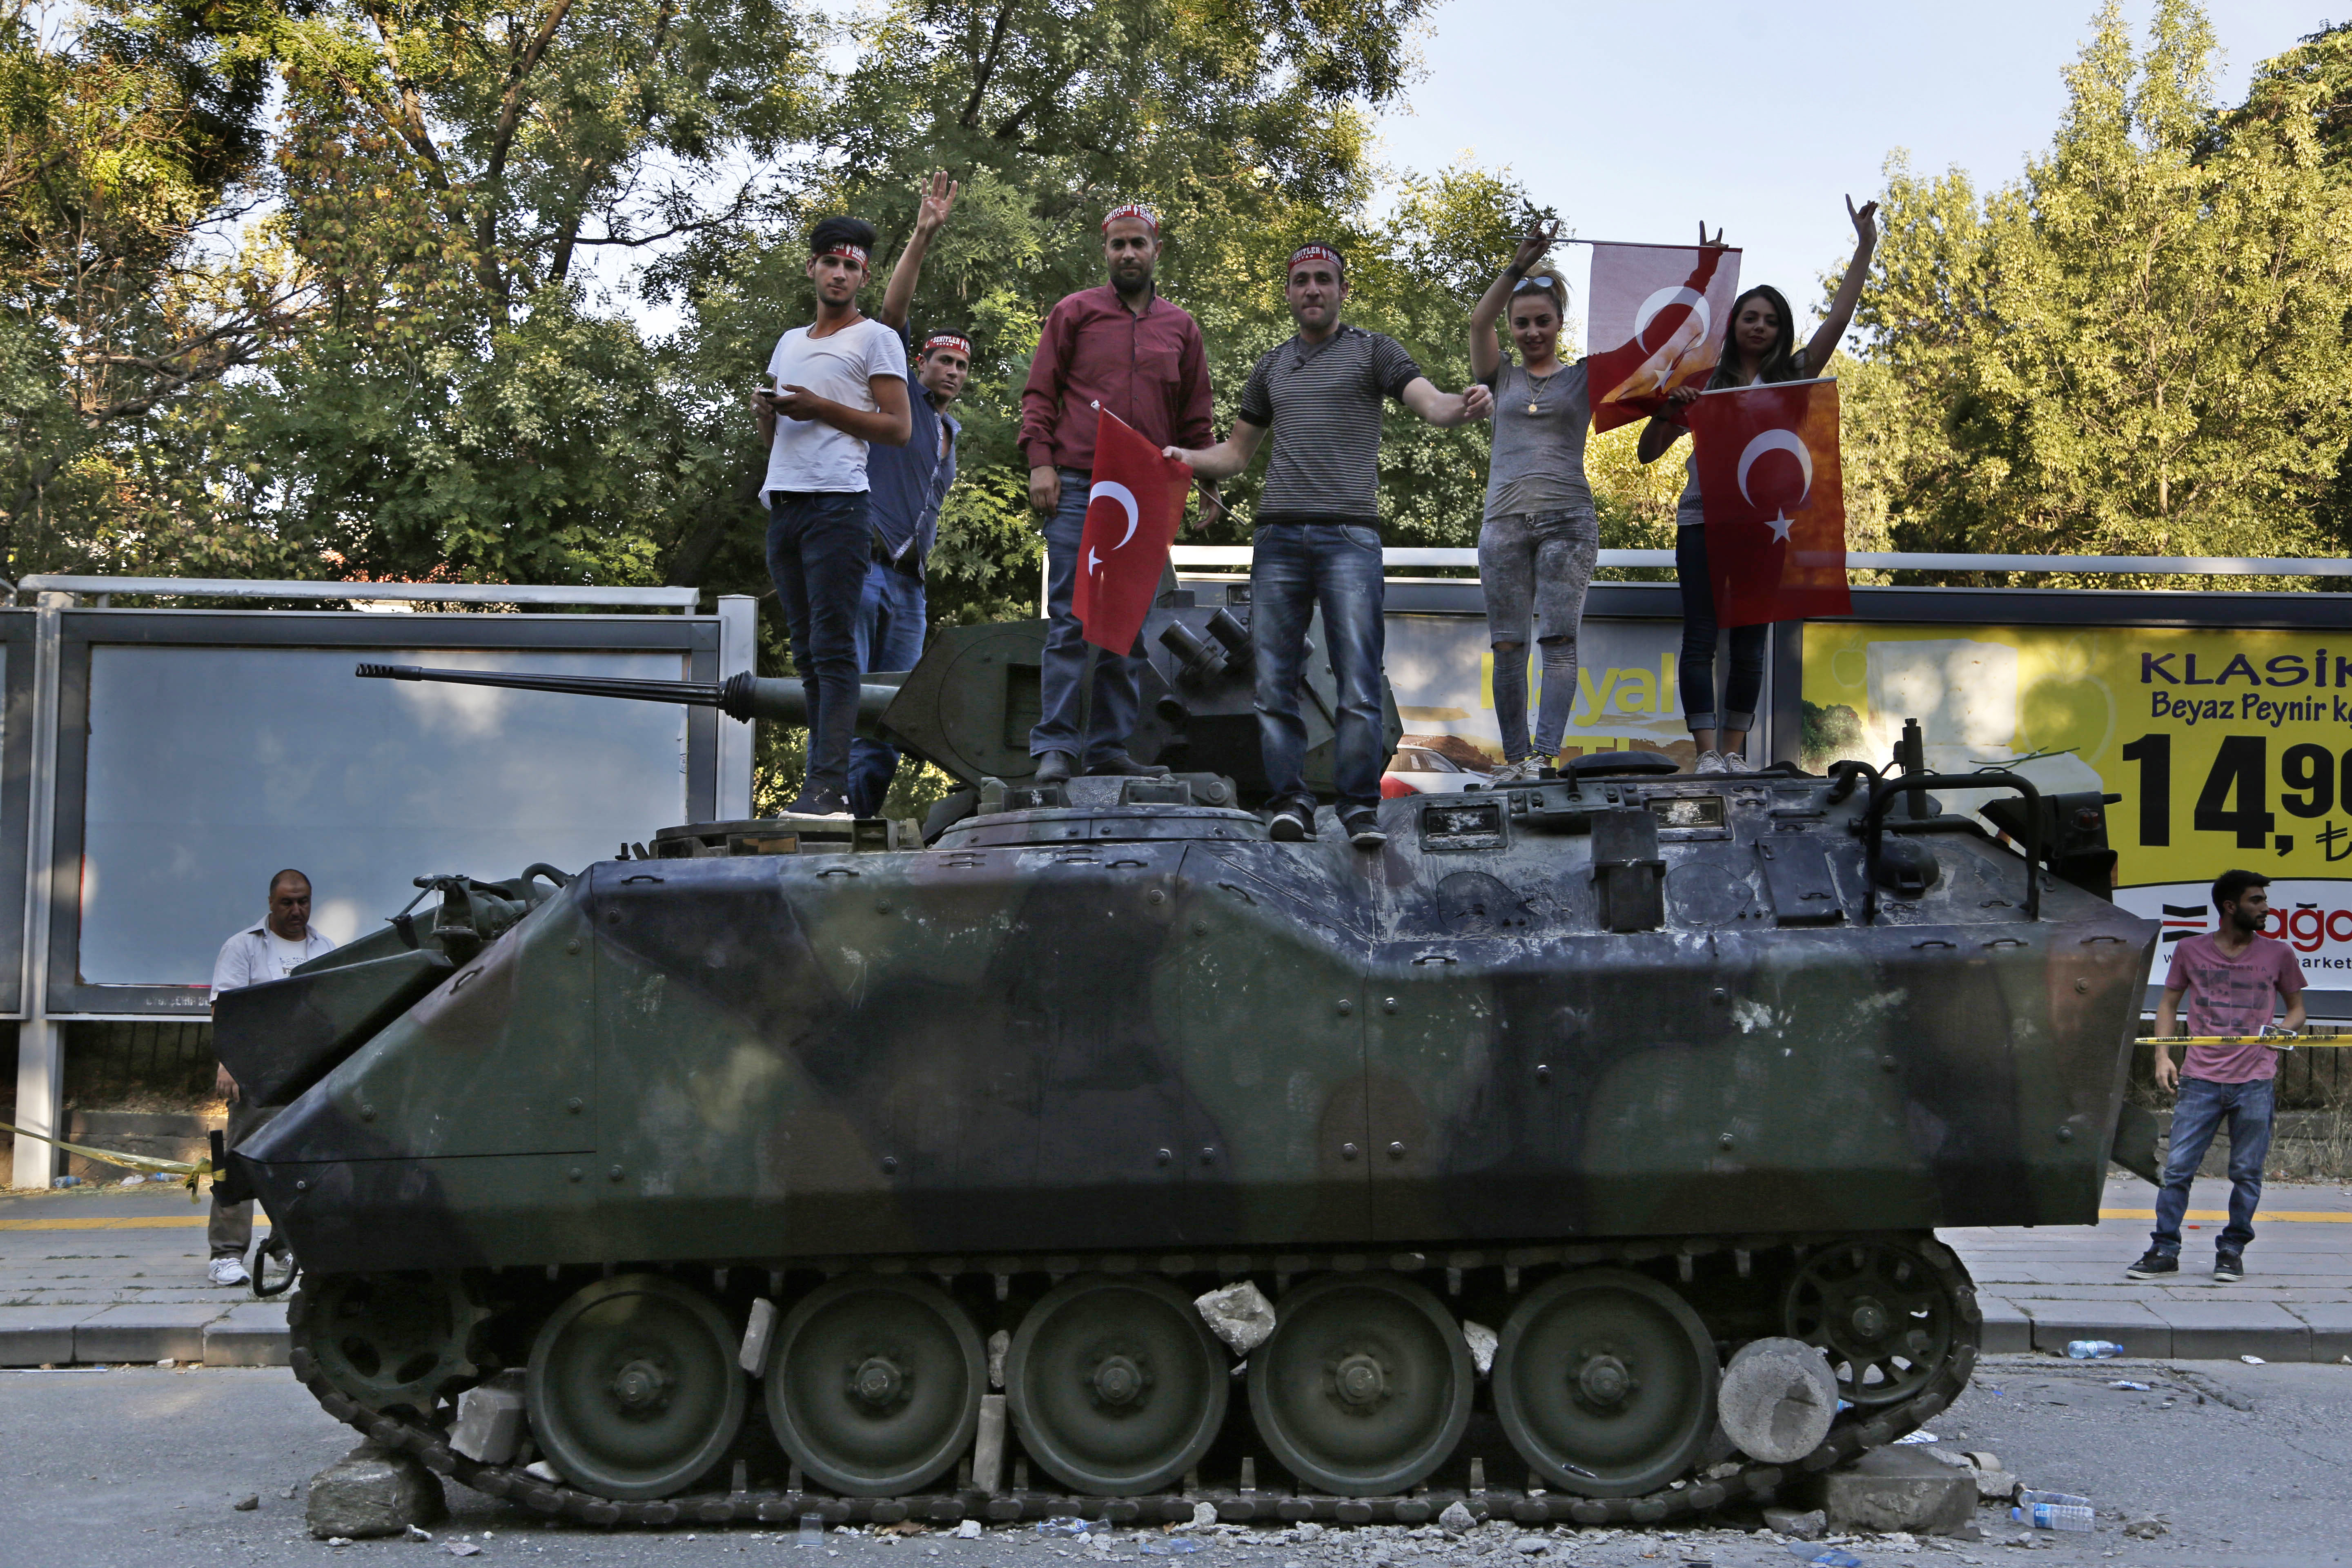 Turkish citizens stand on a damaged Turkish military armored personnel carrier  that was attacked by protesters in a street near the Turkish military headquarters in Ankara, July 16, 2016.